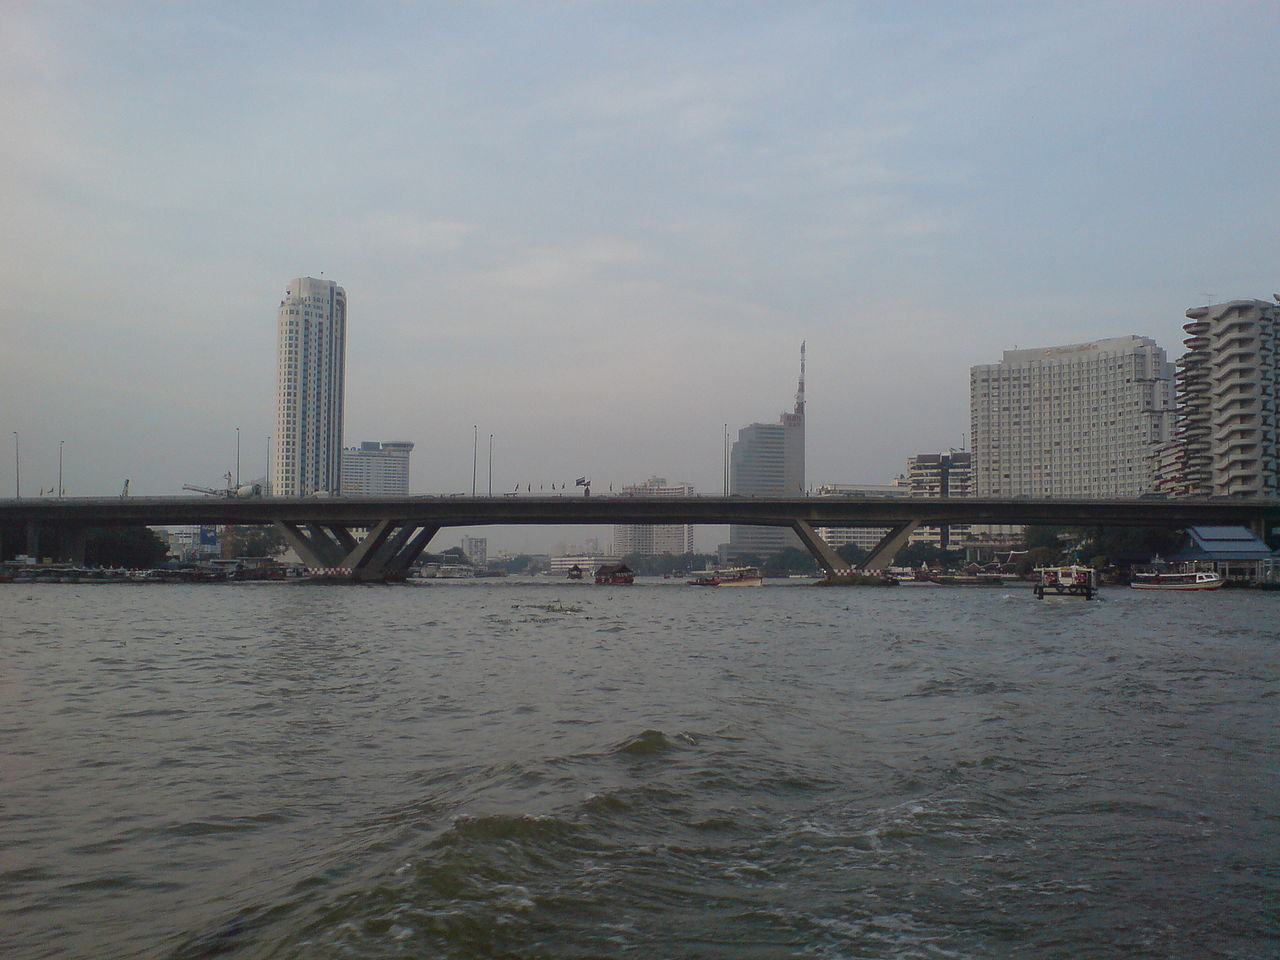 King Taksin Bridge